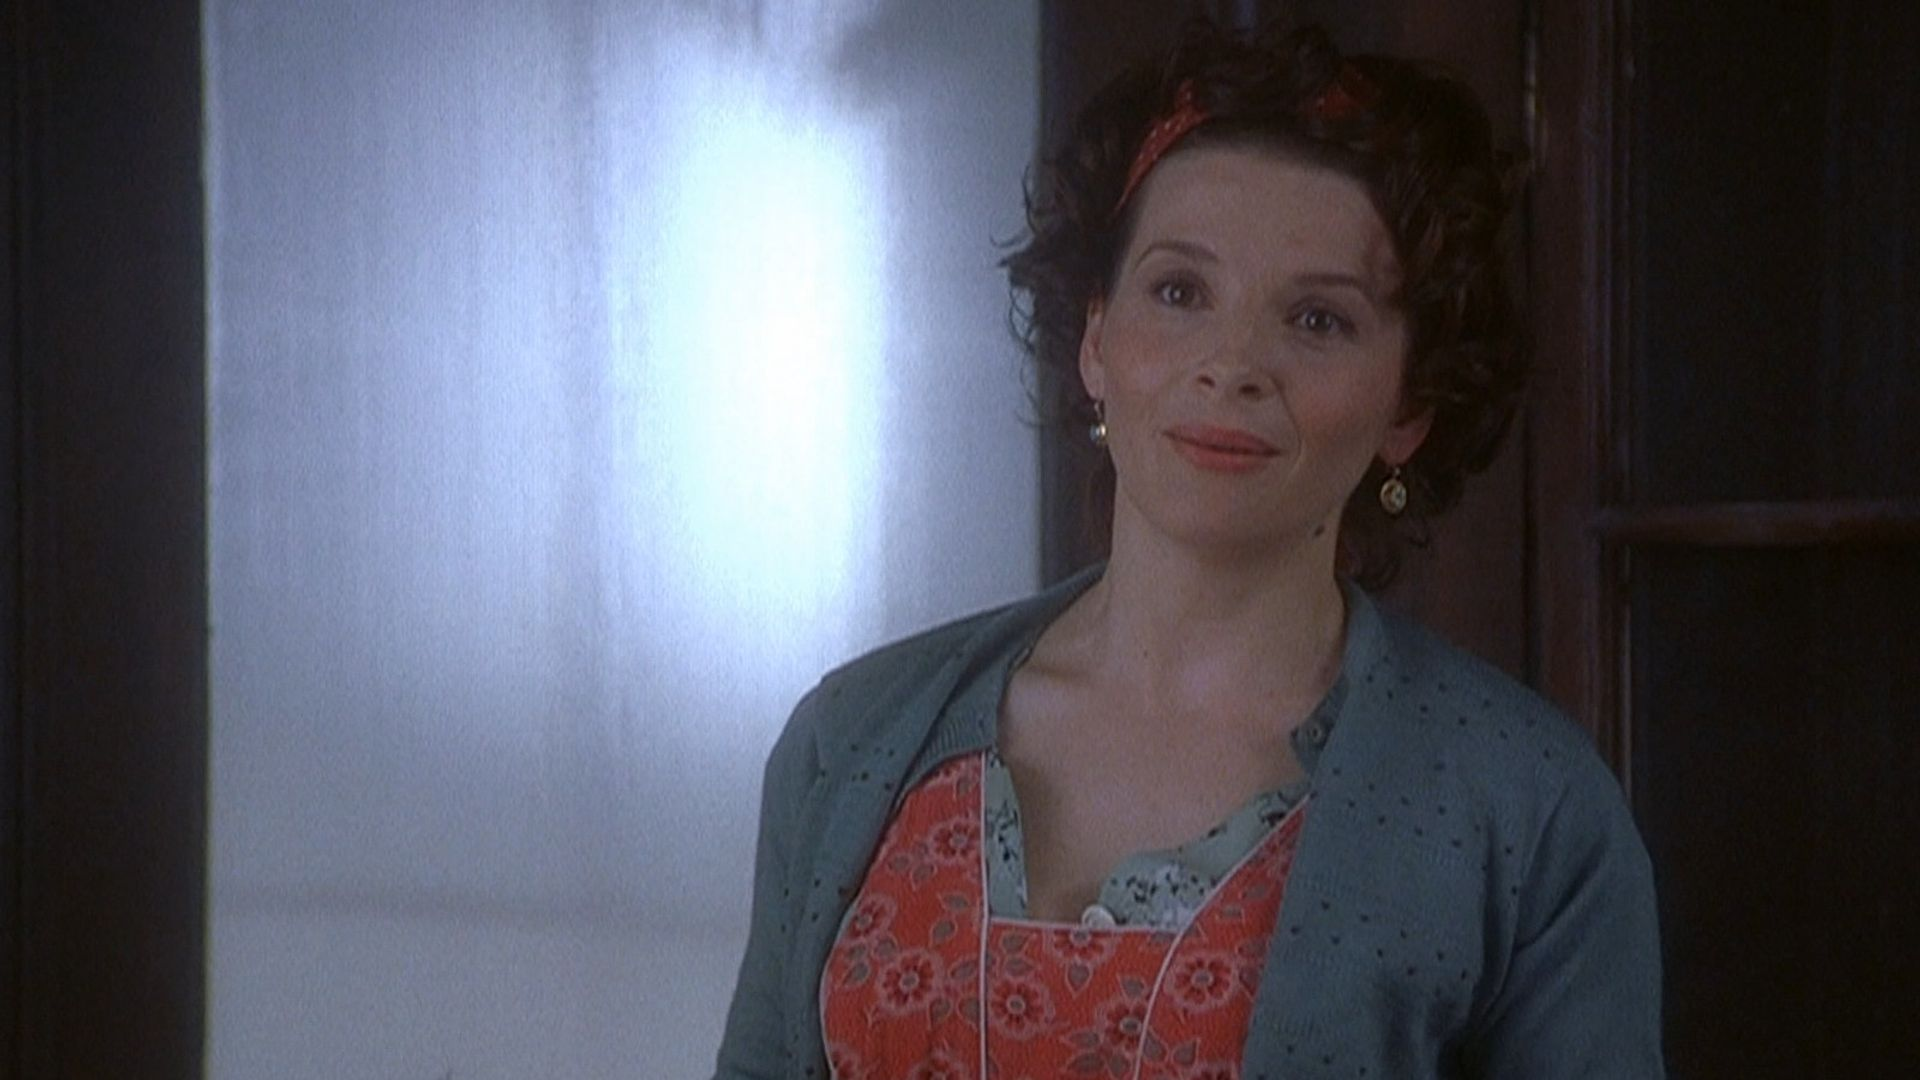 Chocolat 2000 Where To Watch It Streaming Online Reelgood